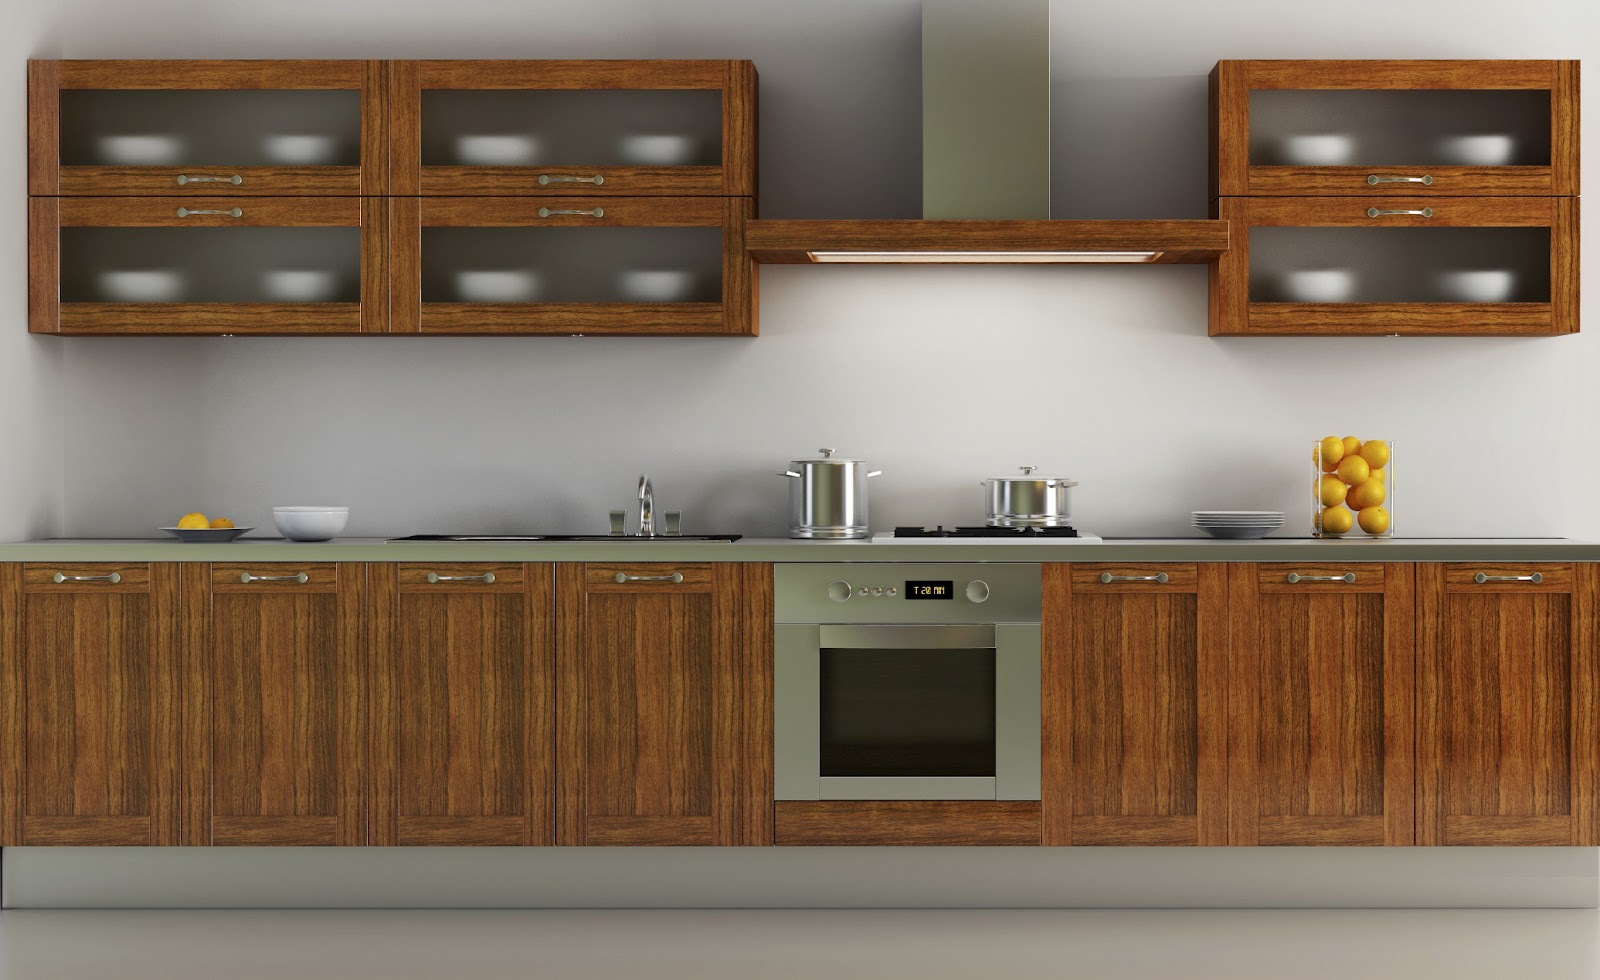 Modern Wood Furniture Designs Ideas An Interior Design: kitchen furniture ideas